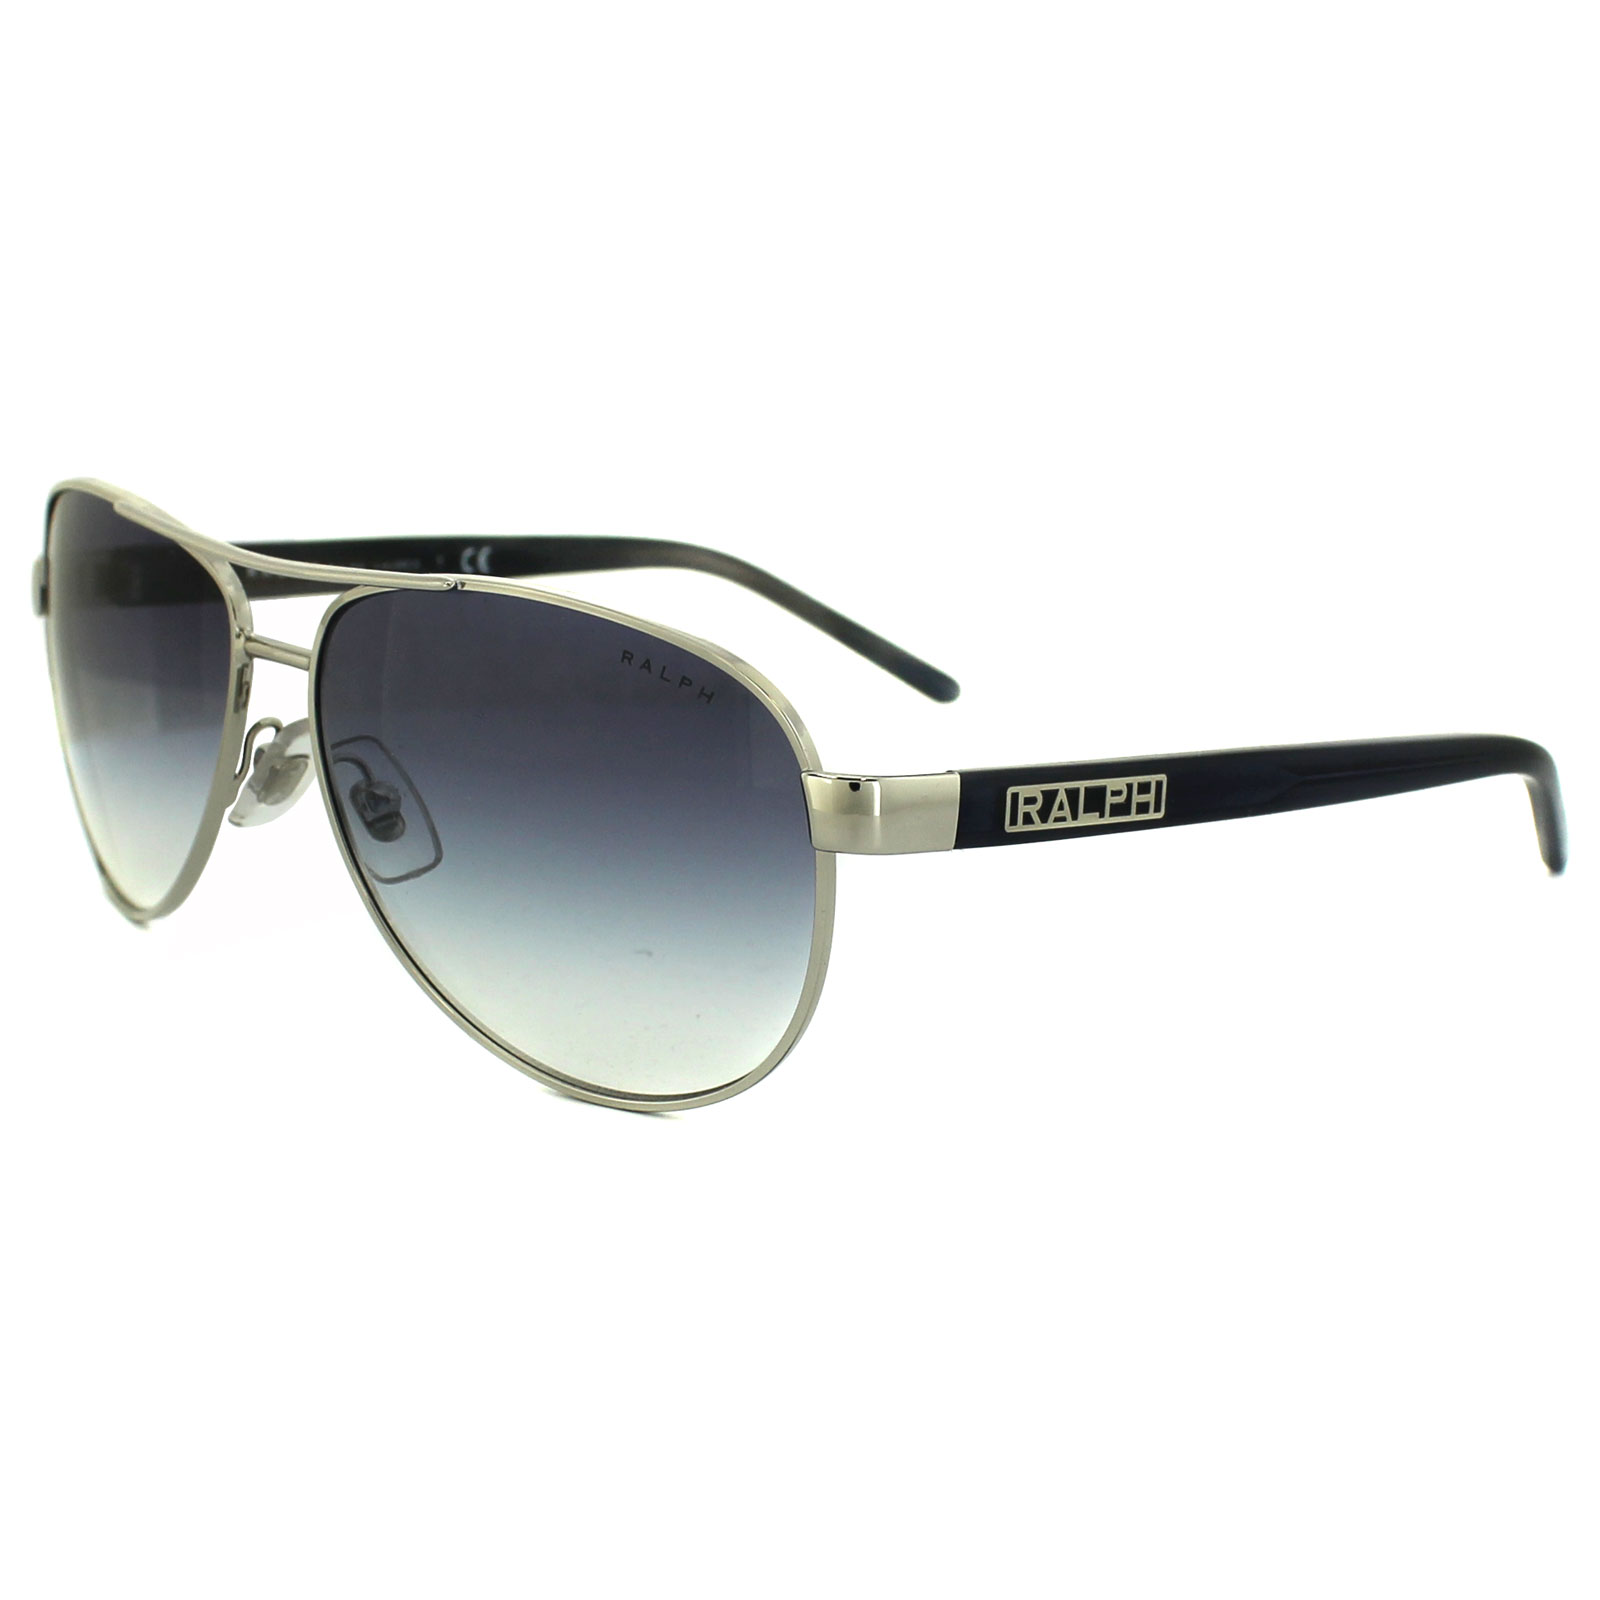 c11276cd9 Cheap Ralph 4004 Sunglasses - Discounted Sunglasses